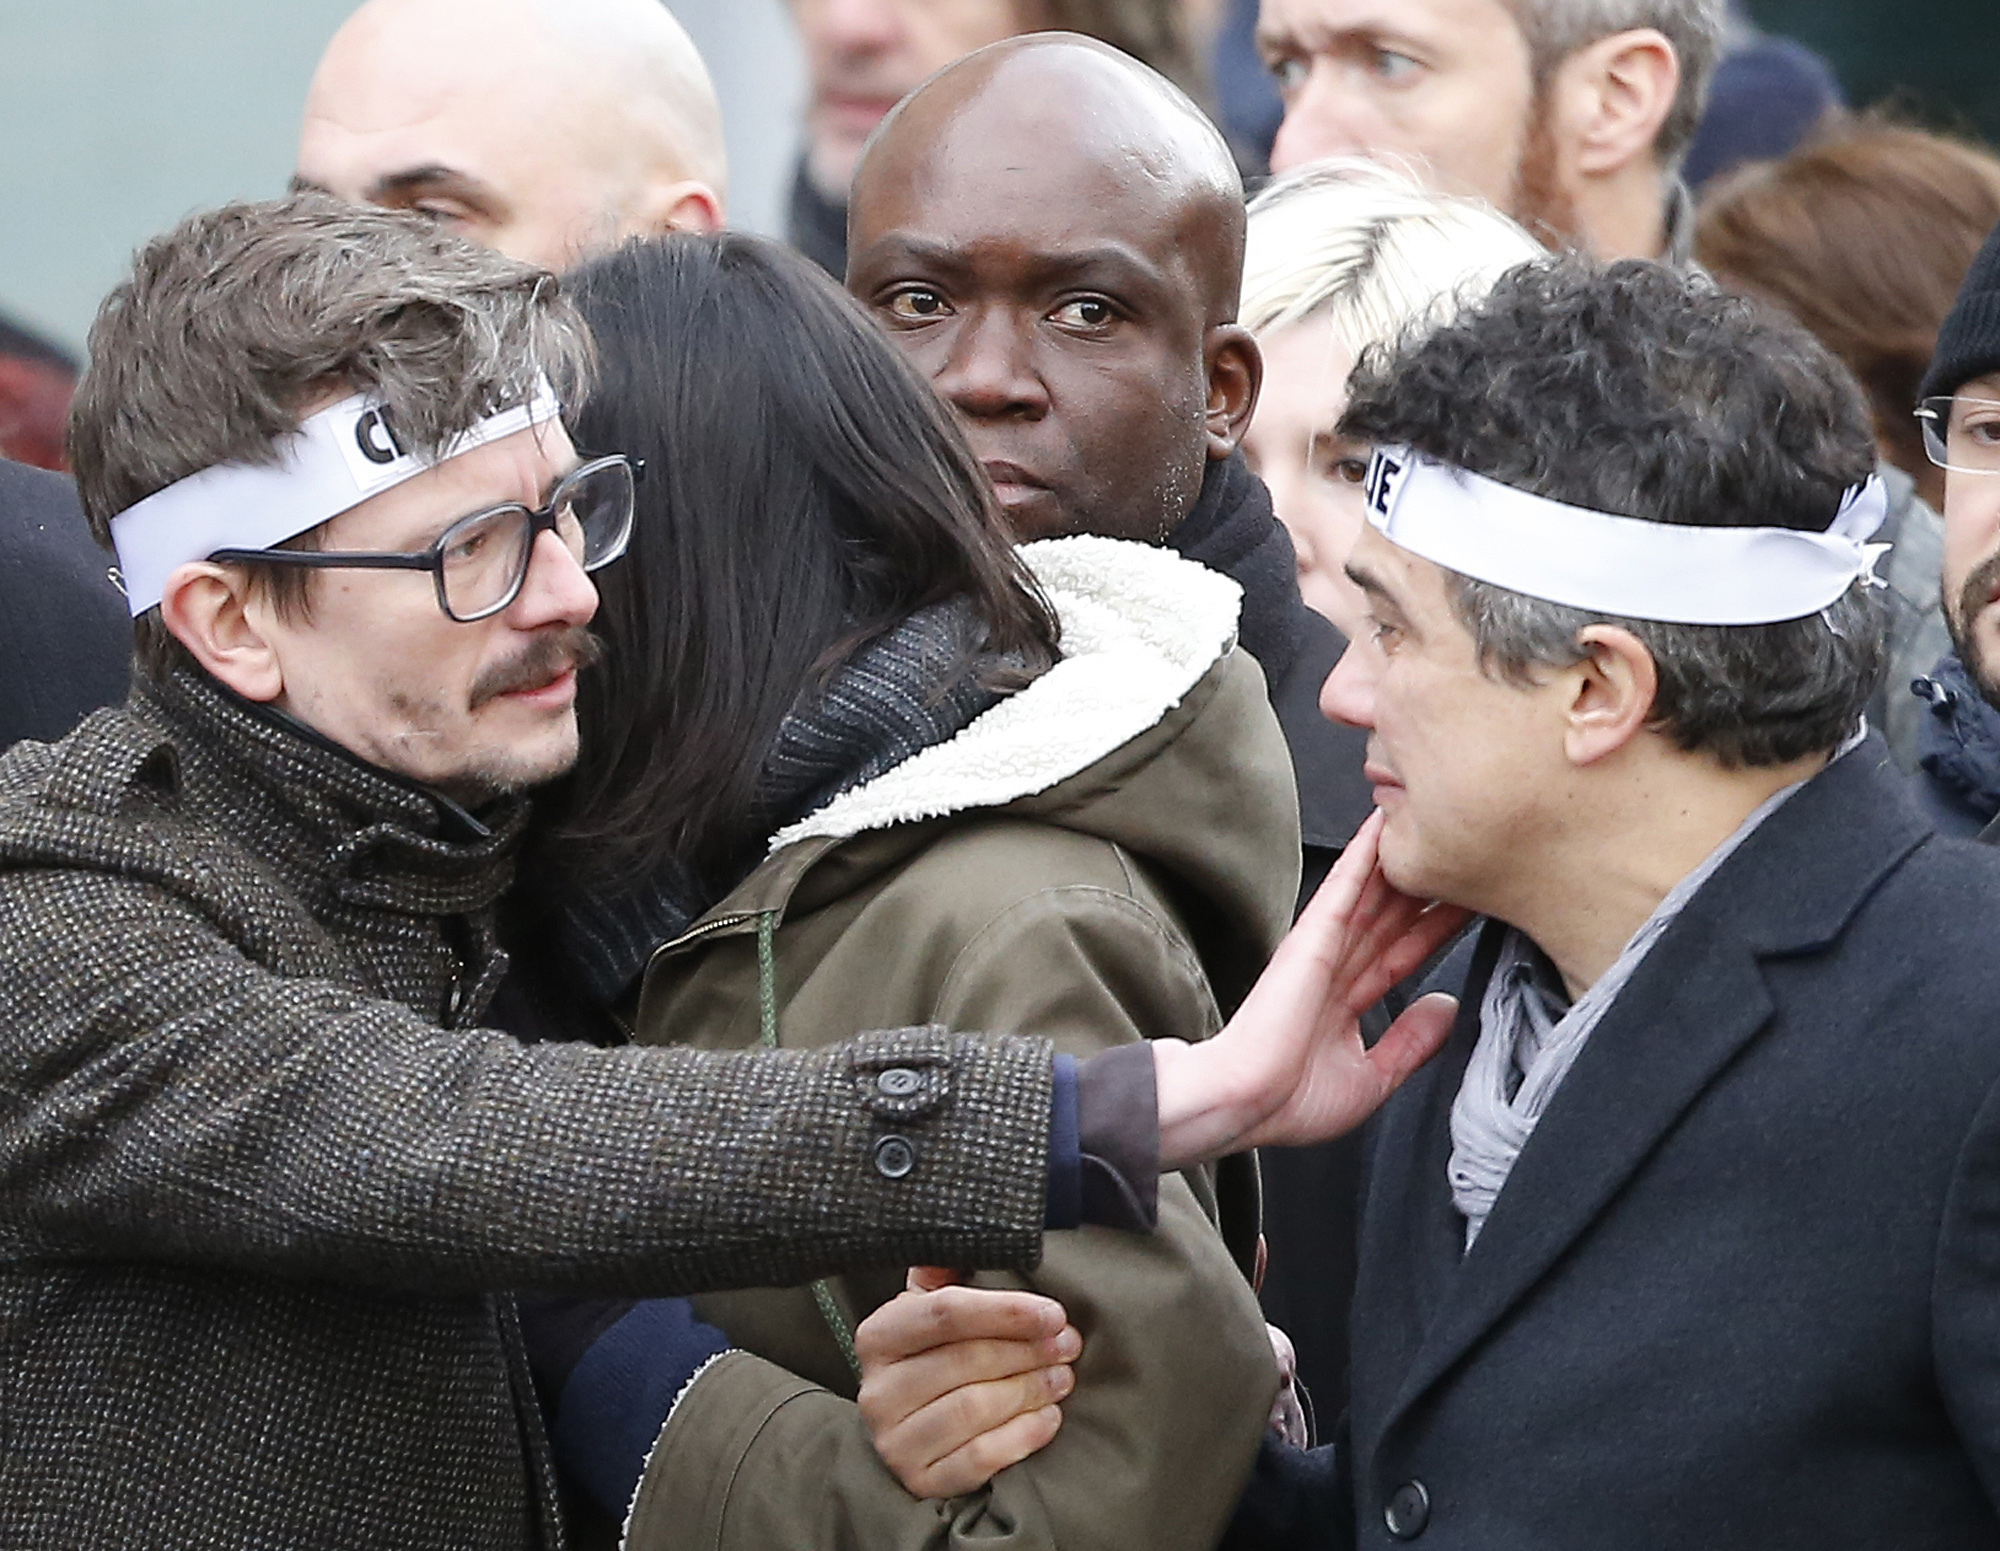 Charlie Hebdo's Editor On New Issue: 'We're Happy To Have ... Done It'